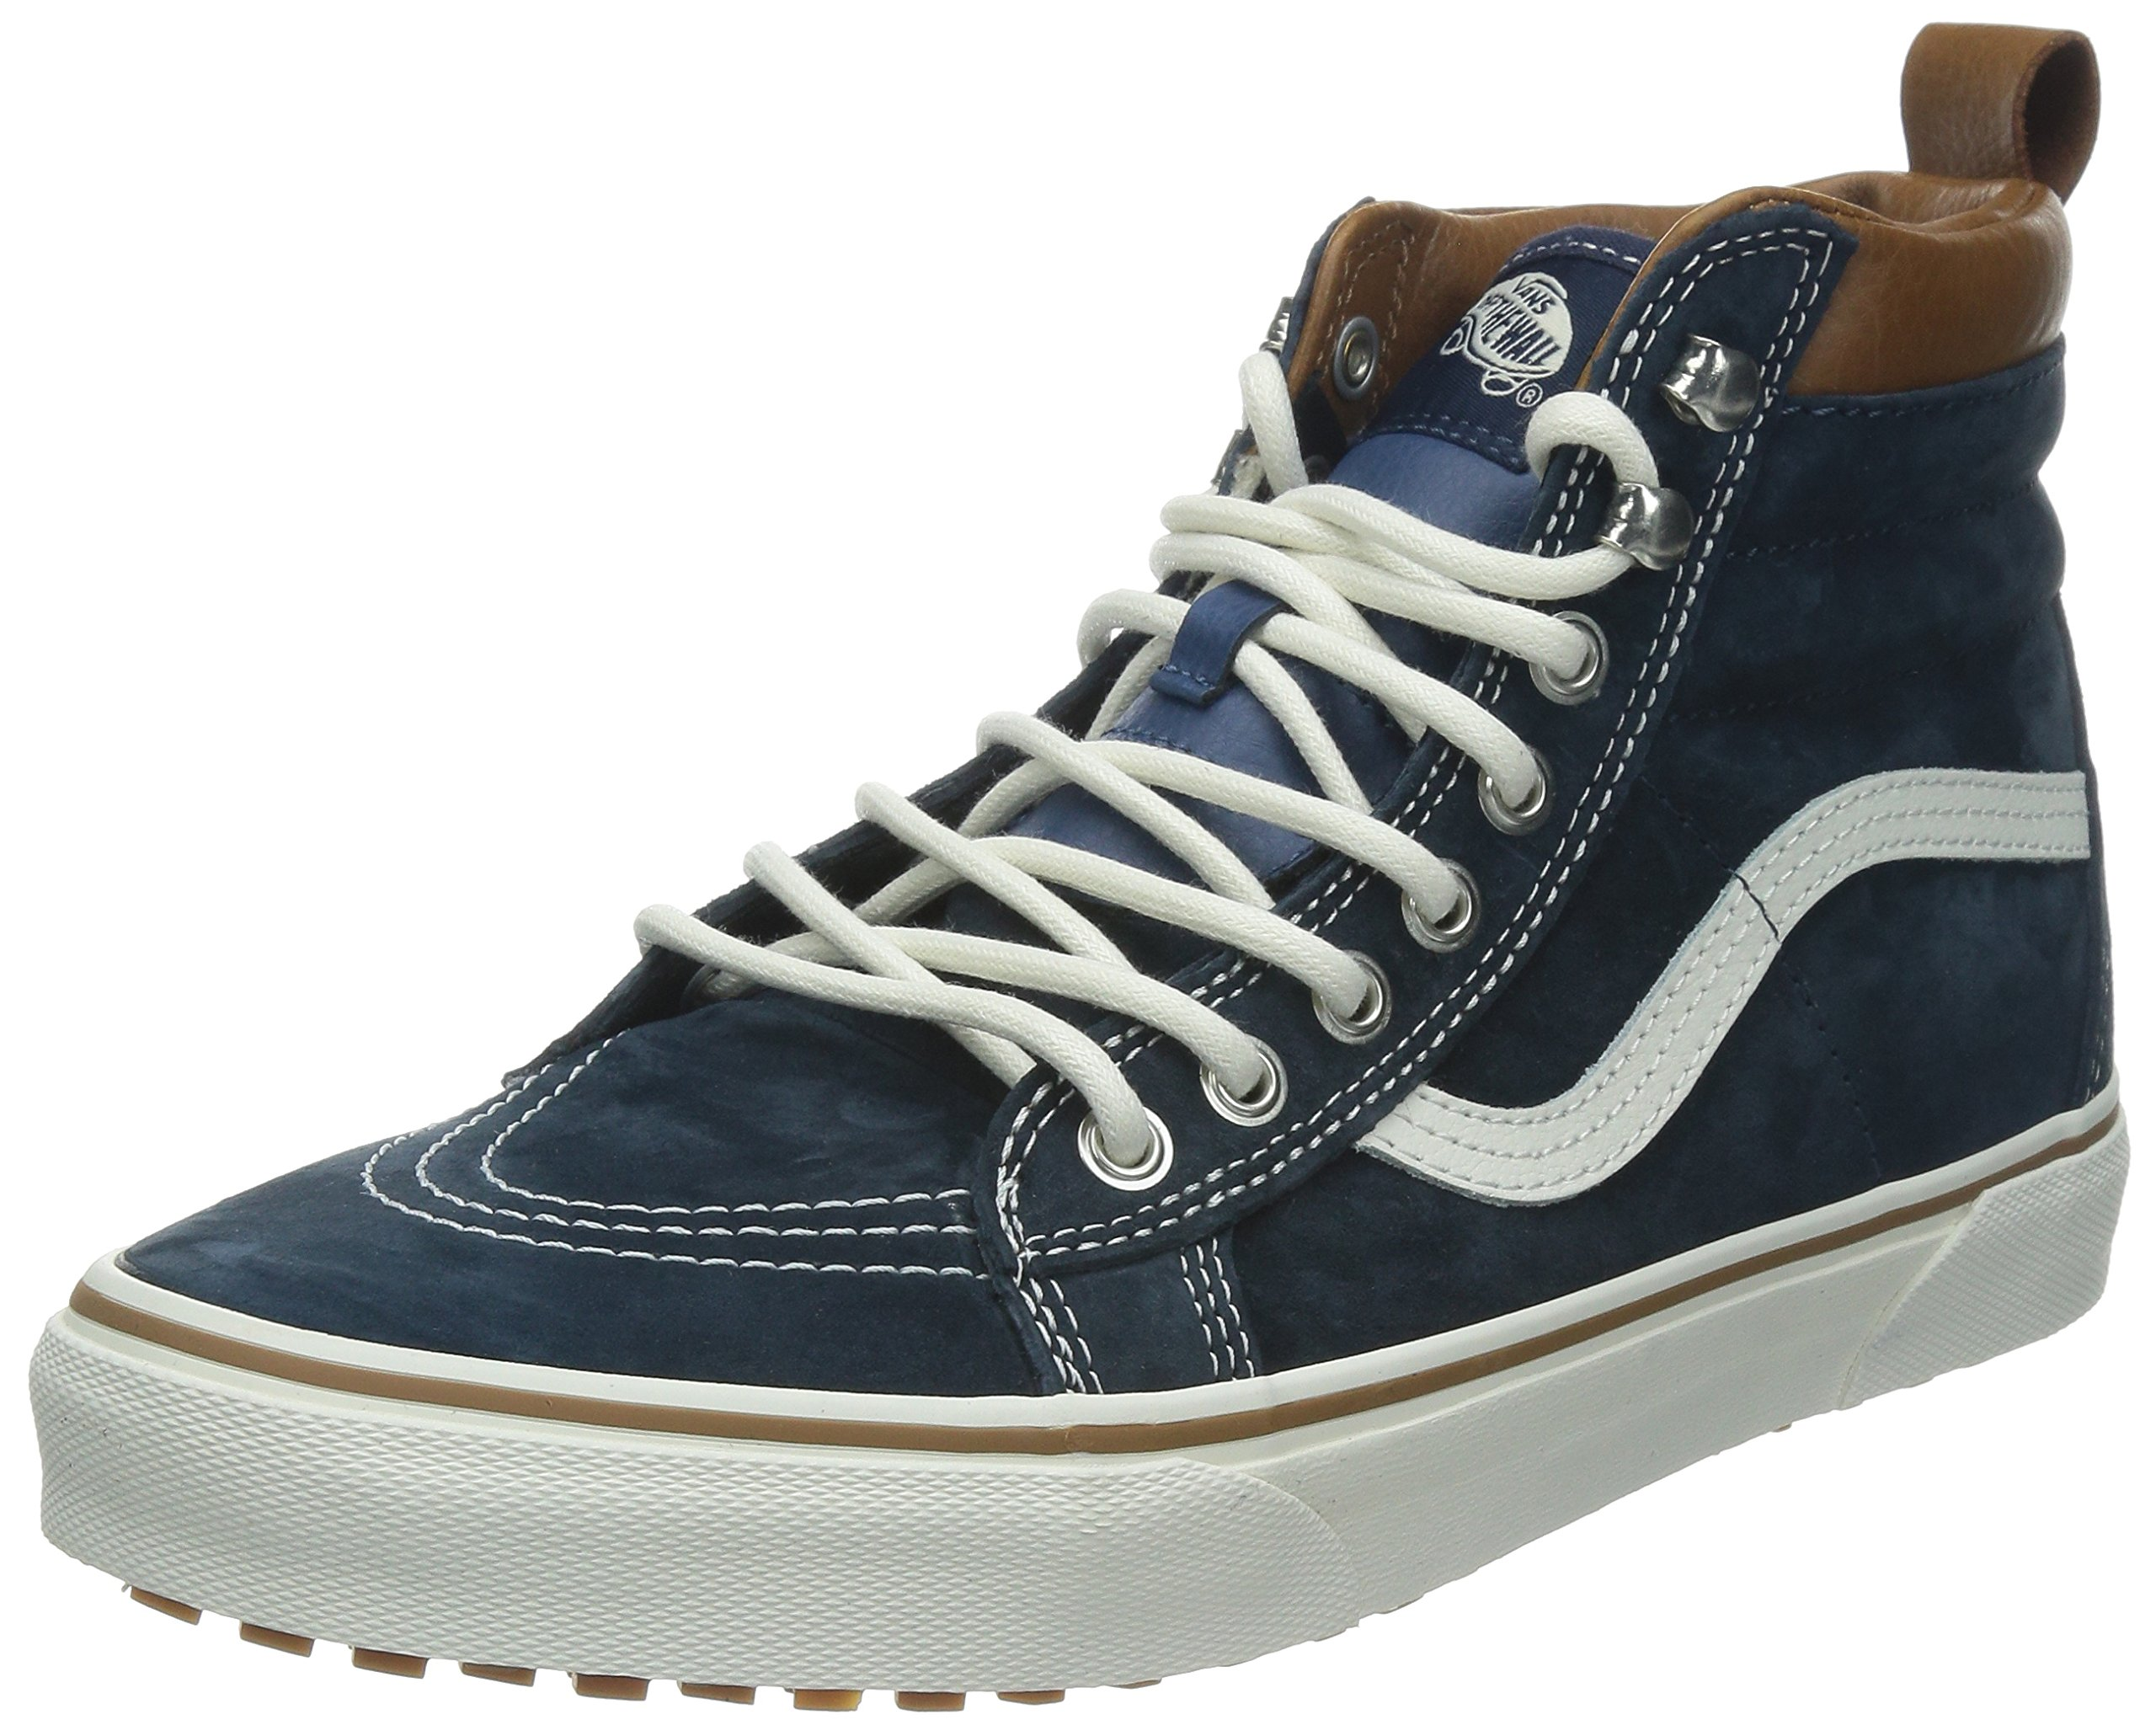 Vans Unisex SK8-Hi MTE Dress Blues Sneaker - 8.5